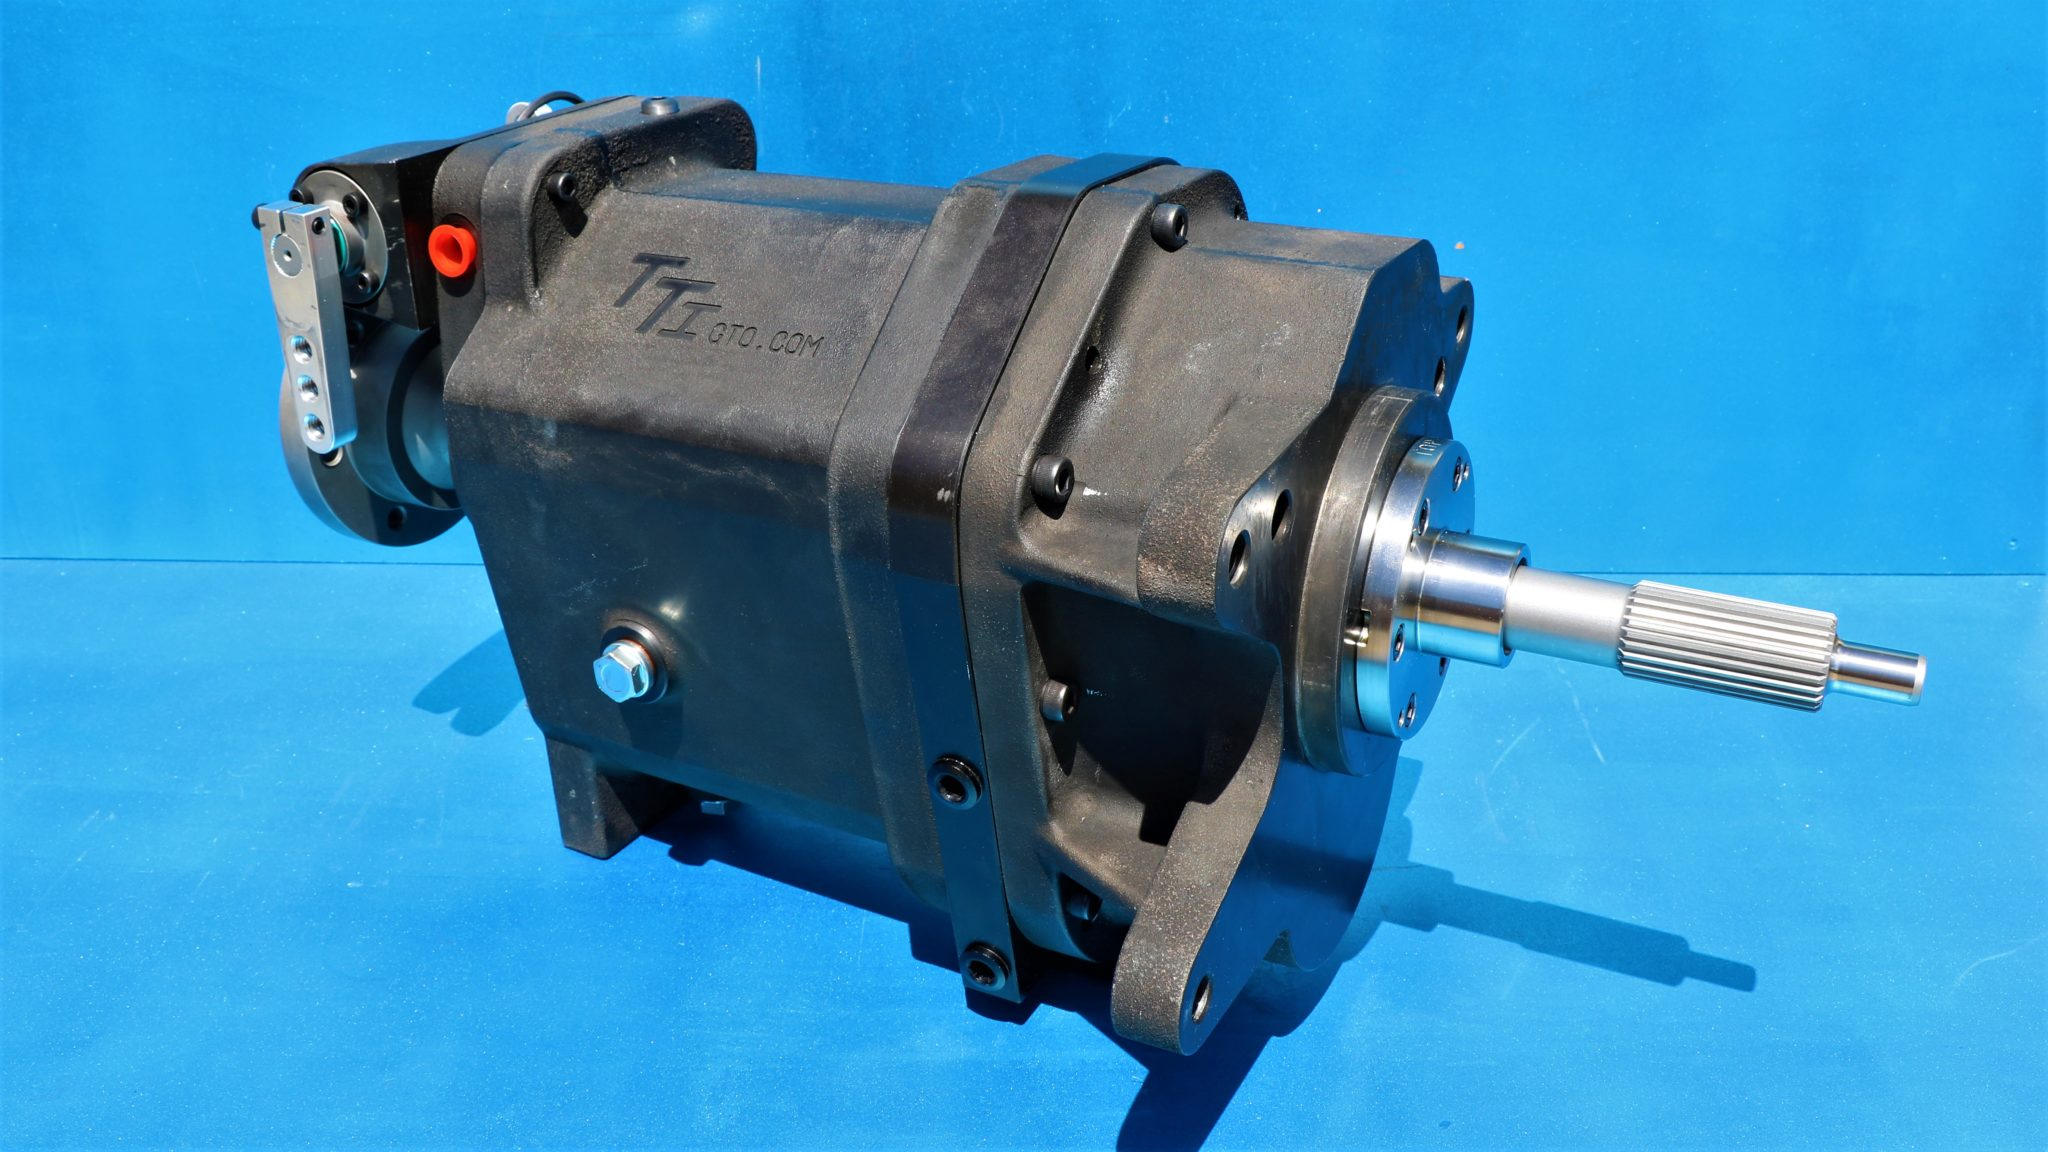 TTI sequential race lightweight gearbox now available for low powered race cars to accelerate off the start line faster and be efficient on the race track.